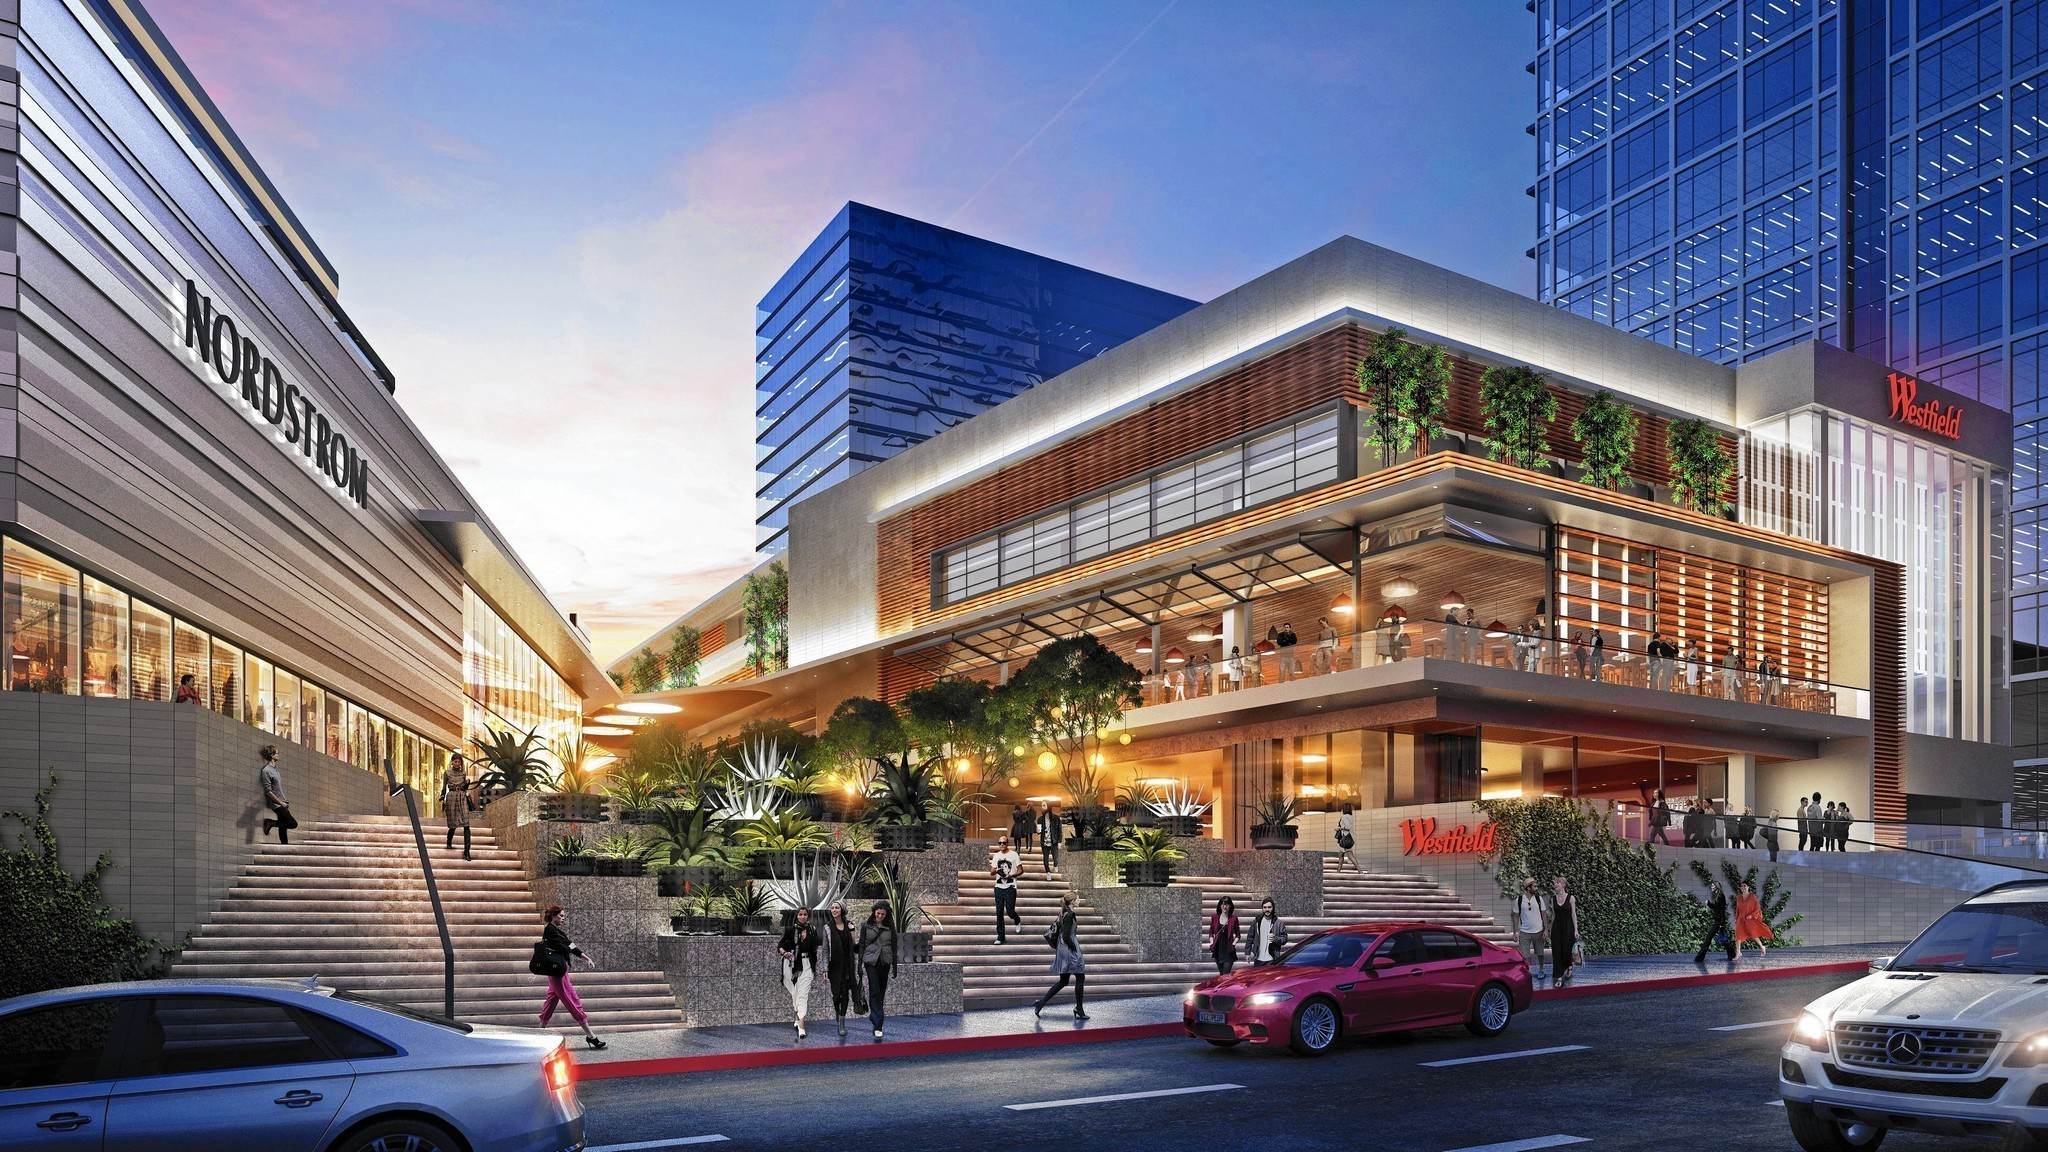 Nordstrom And Eataly Are Helping Century Citys Mall Go